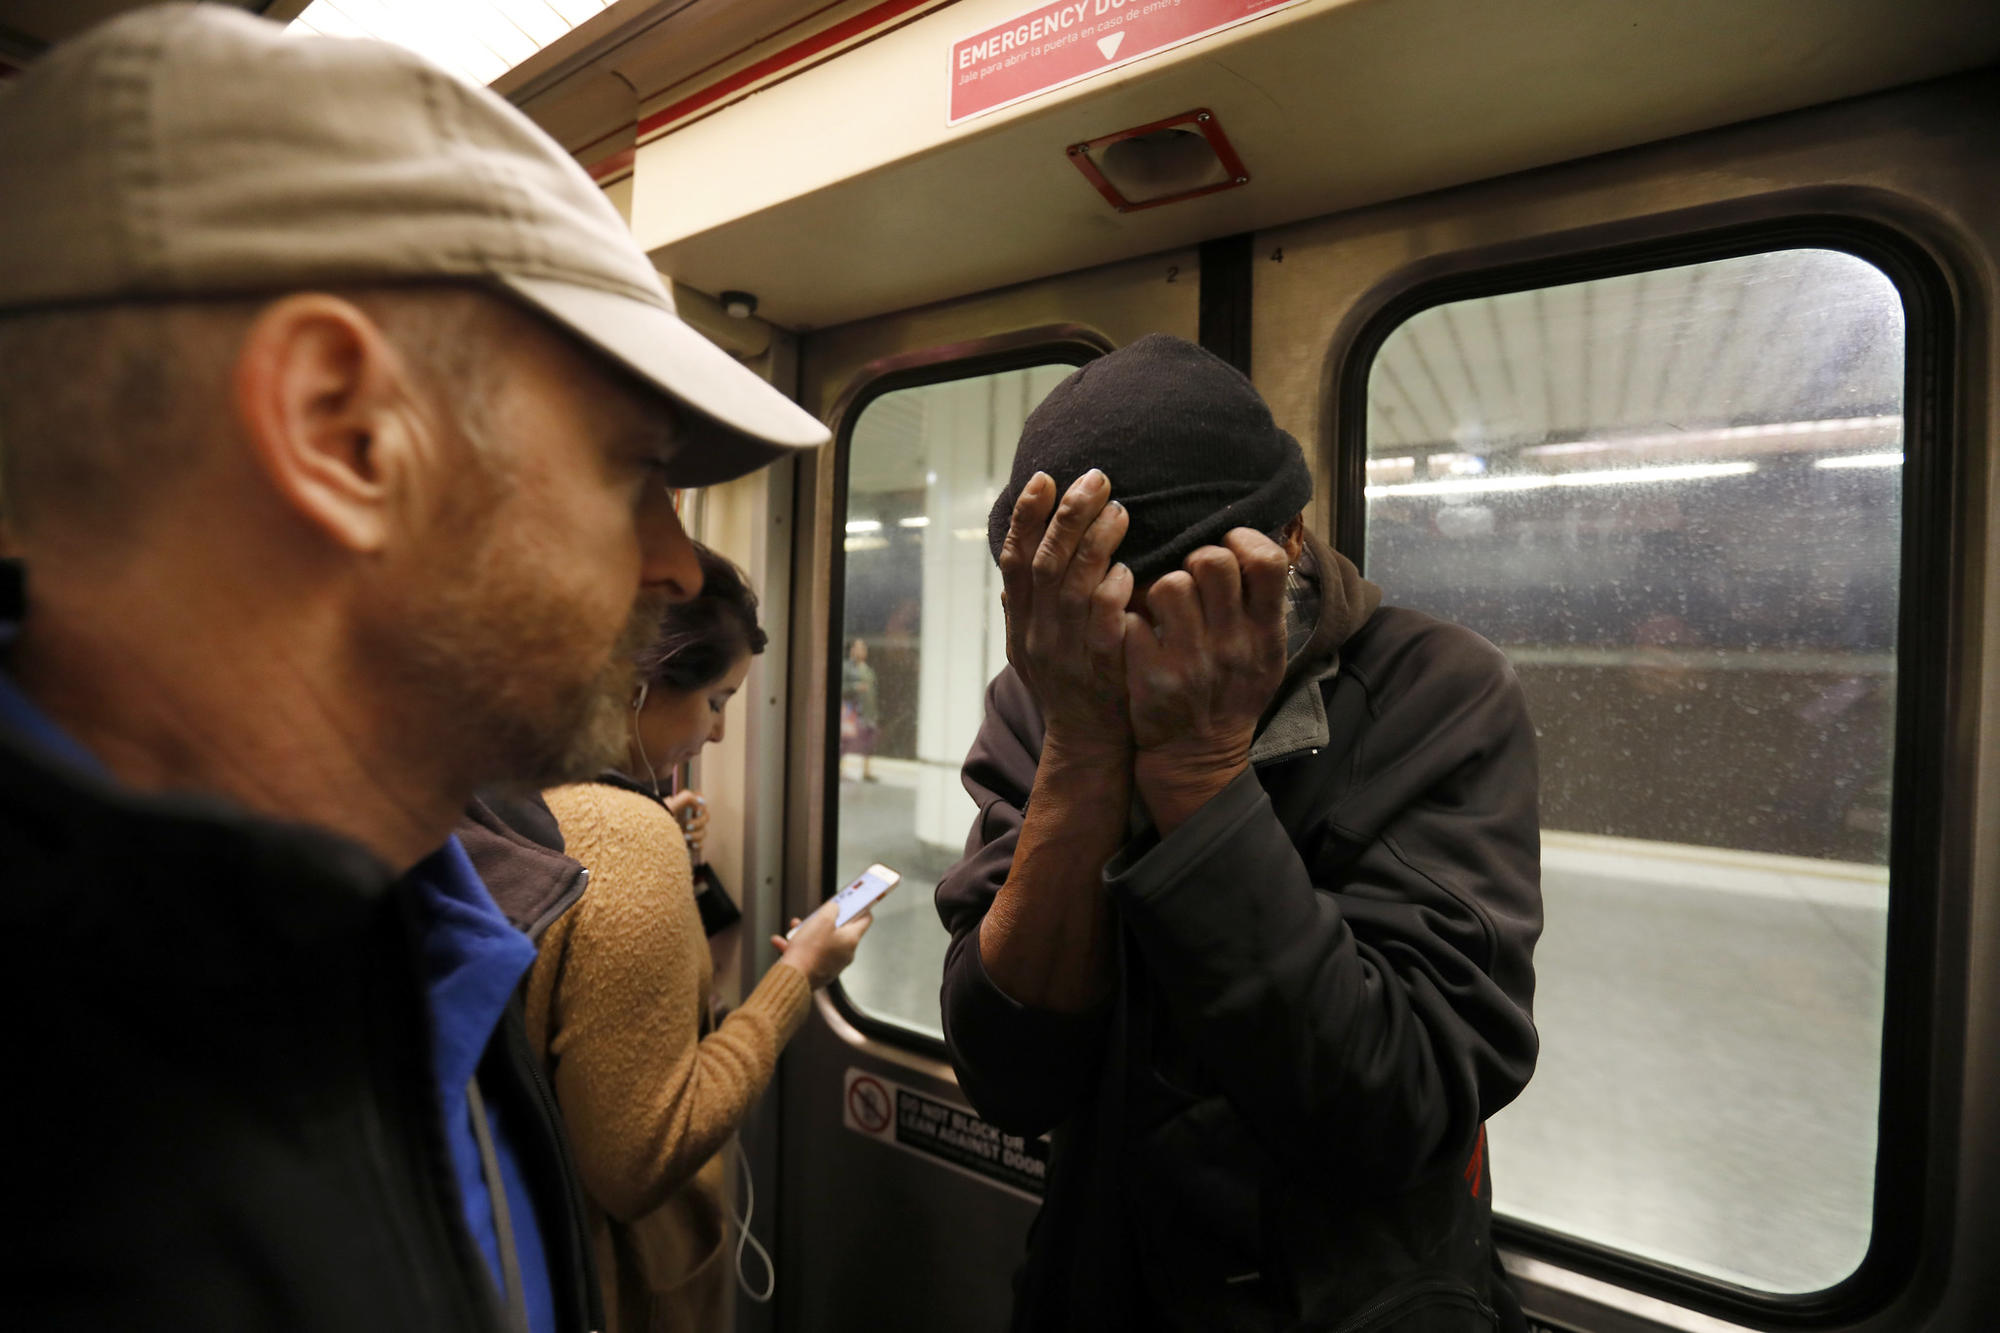 As waves of homeless descend onto trains, L A  tries a new